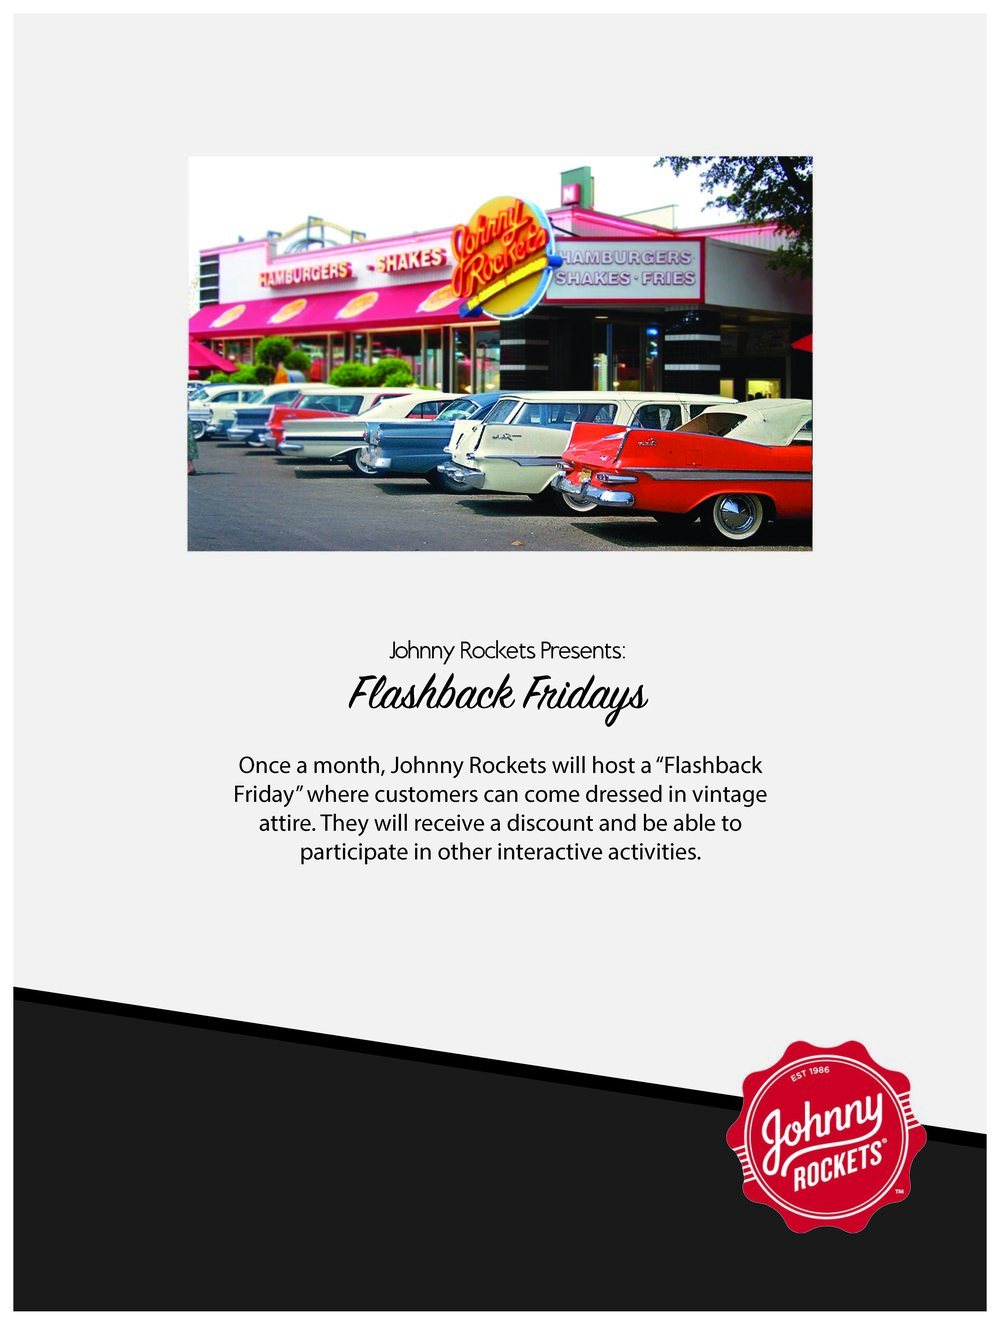 Final Johnny Rockets Campaign_Page_7.jpg